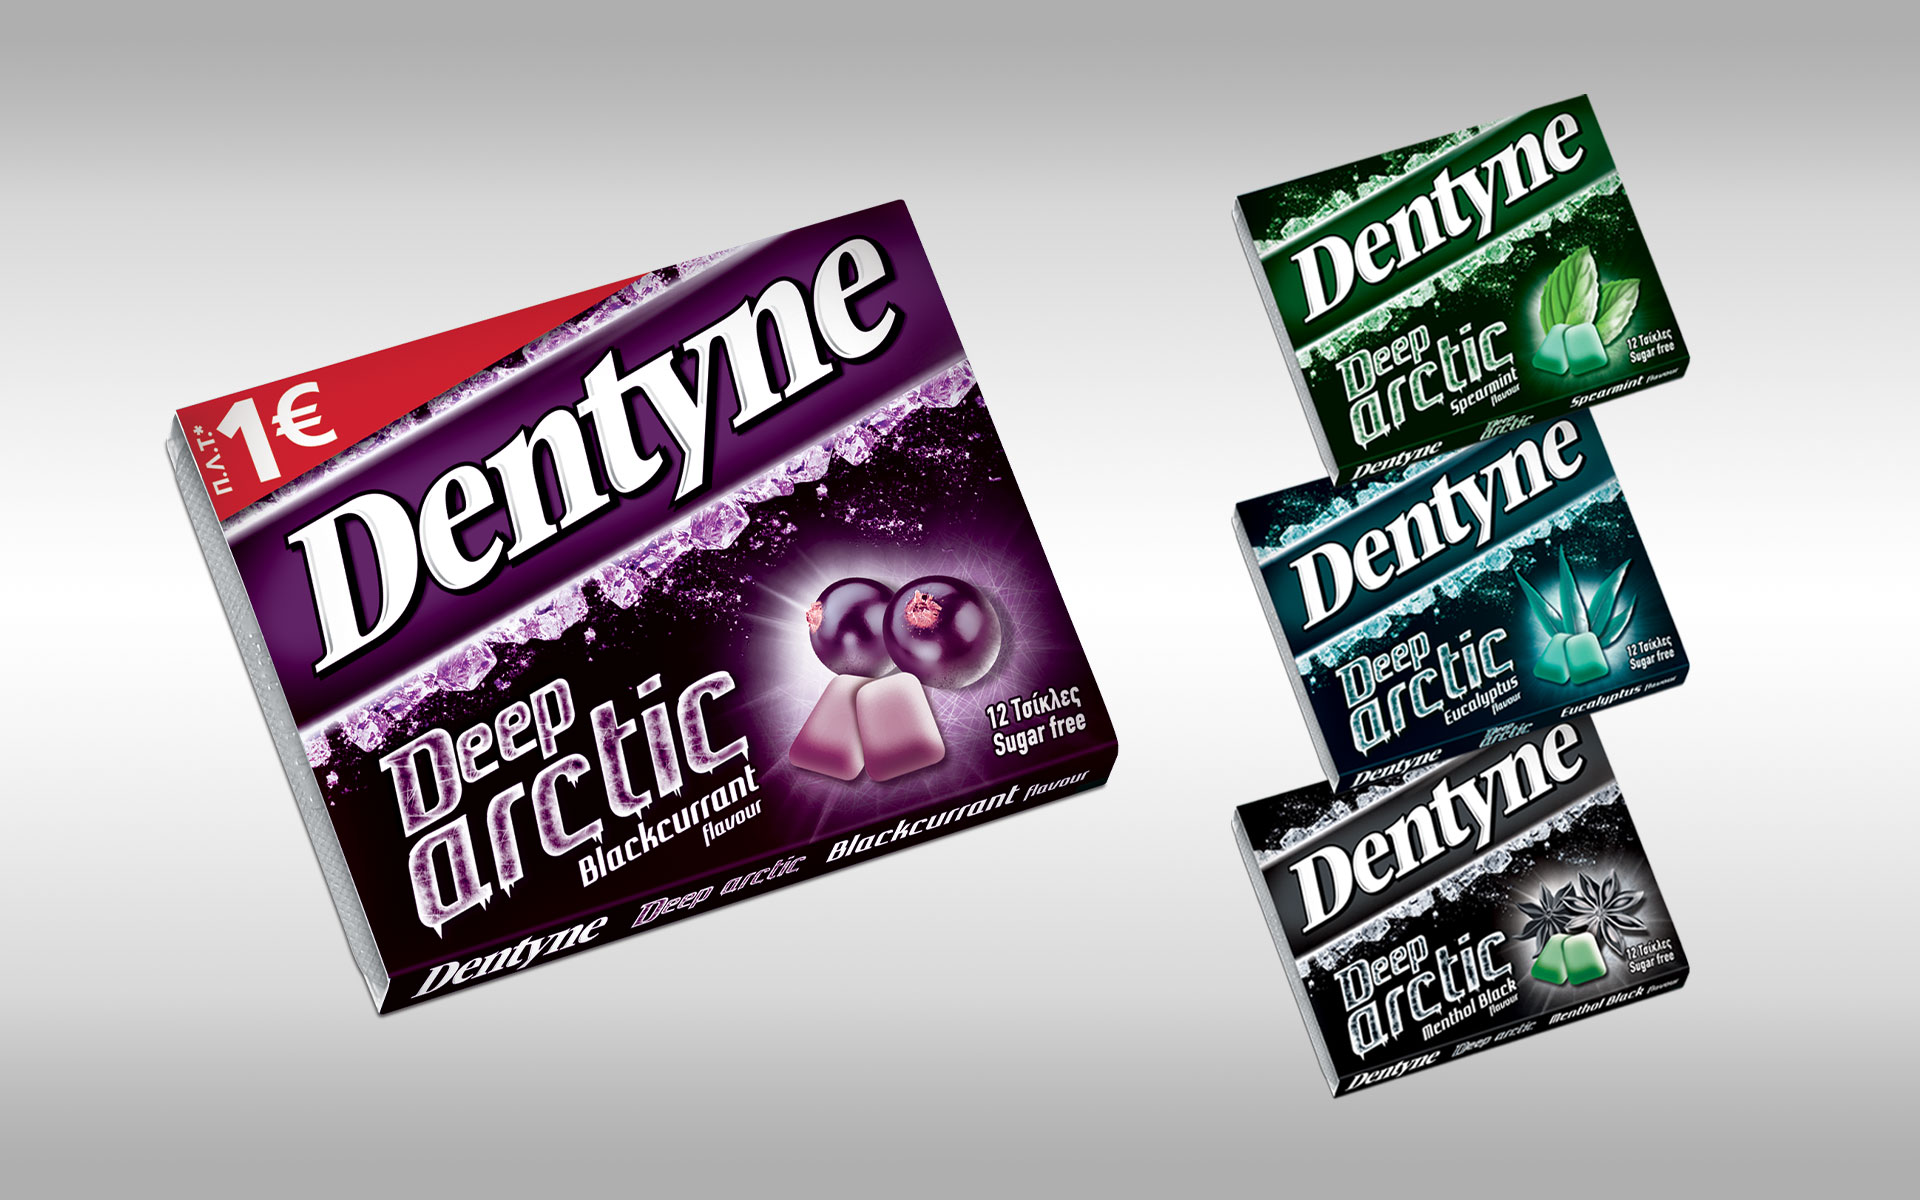 Dentyne Deep Arctic header image